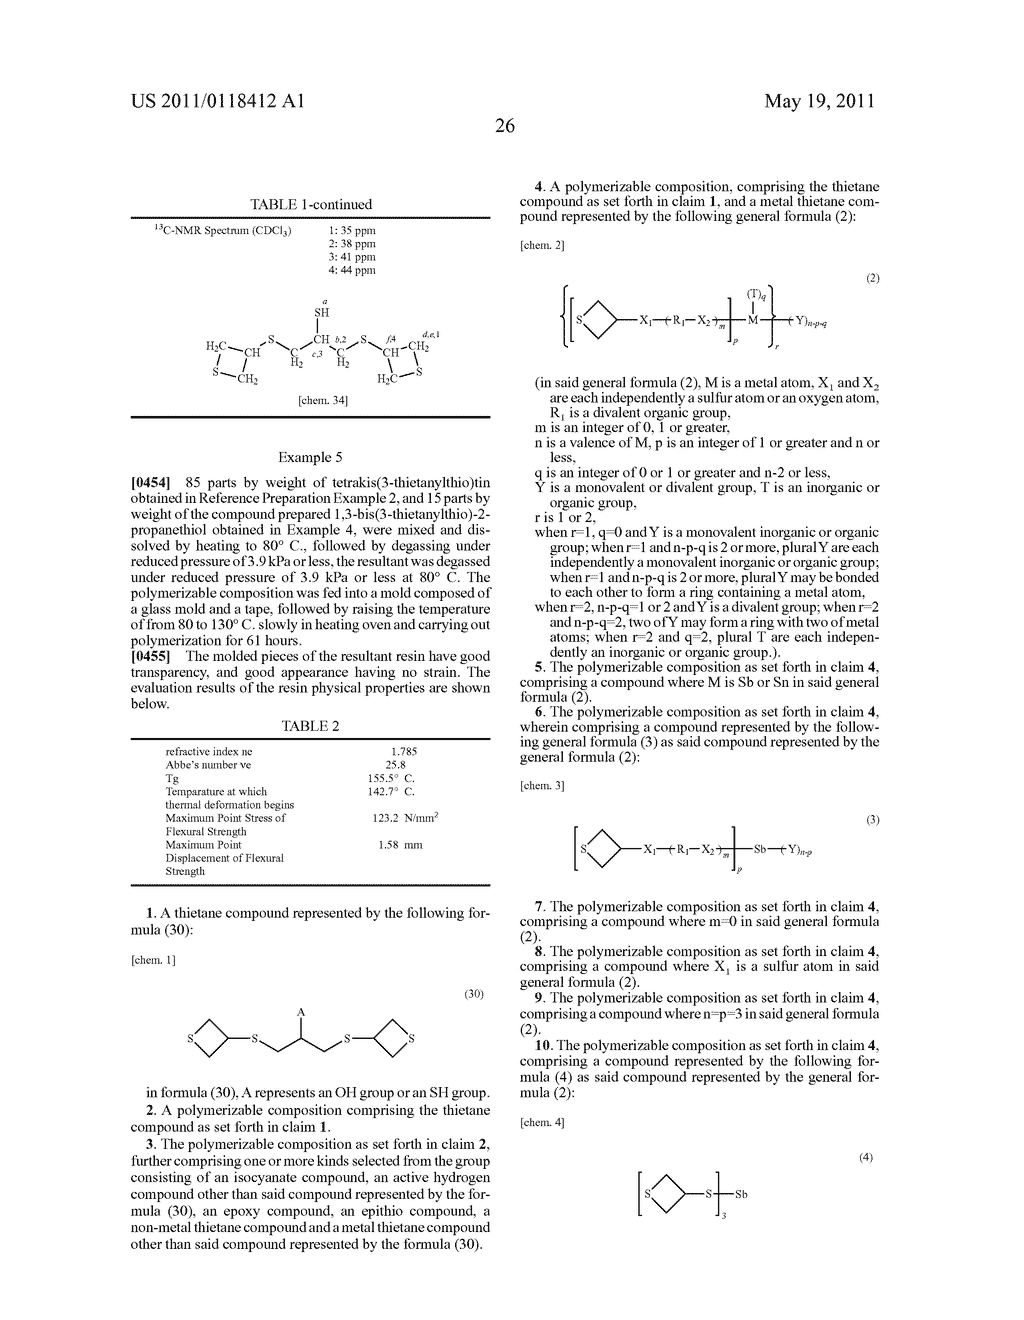 THIETANE COMPOUND, POLYMERIZABLE COMPOSITION CONTAINING THE SAME, RESIN, METHOD FOR PRODUCING THE RESIN, AND USE OF THE POLYMERIZABLE COMPOSITION AND THE RESIN - diagram, schematic, and image 27